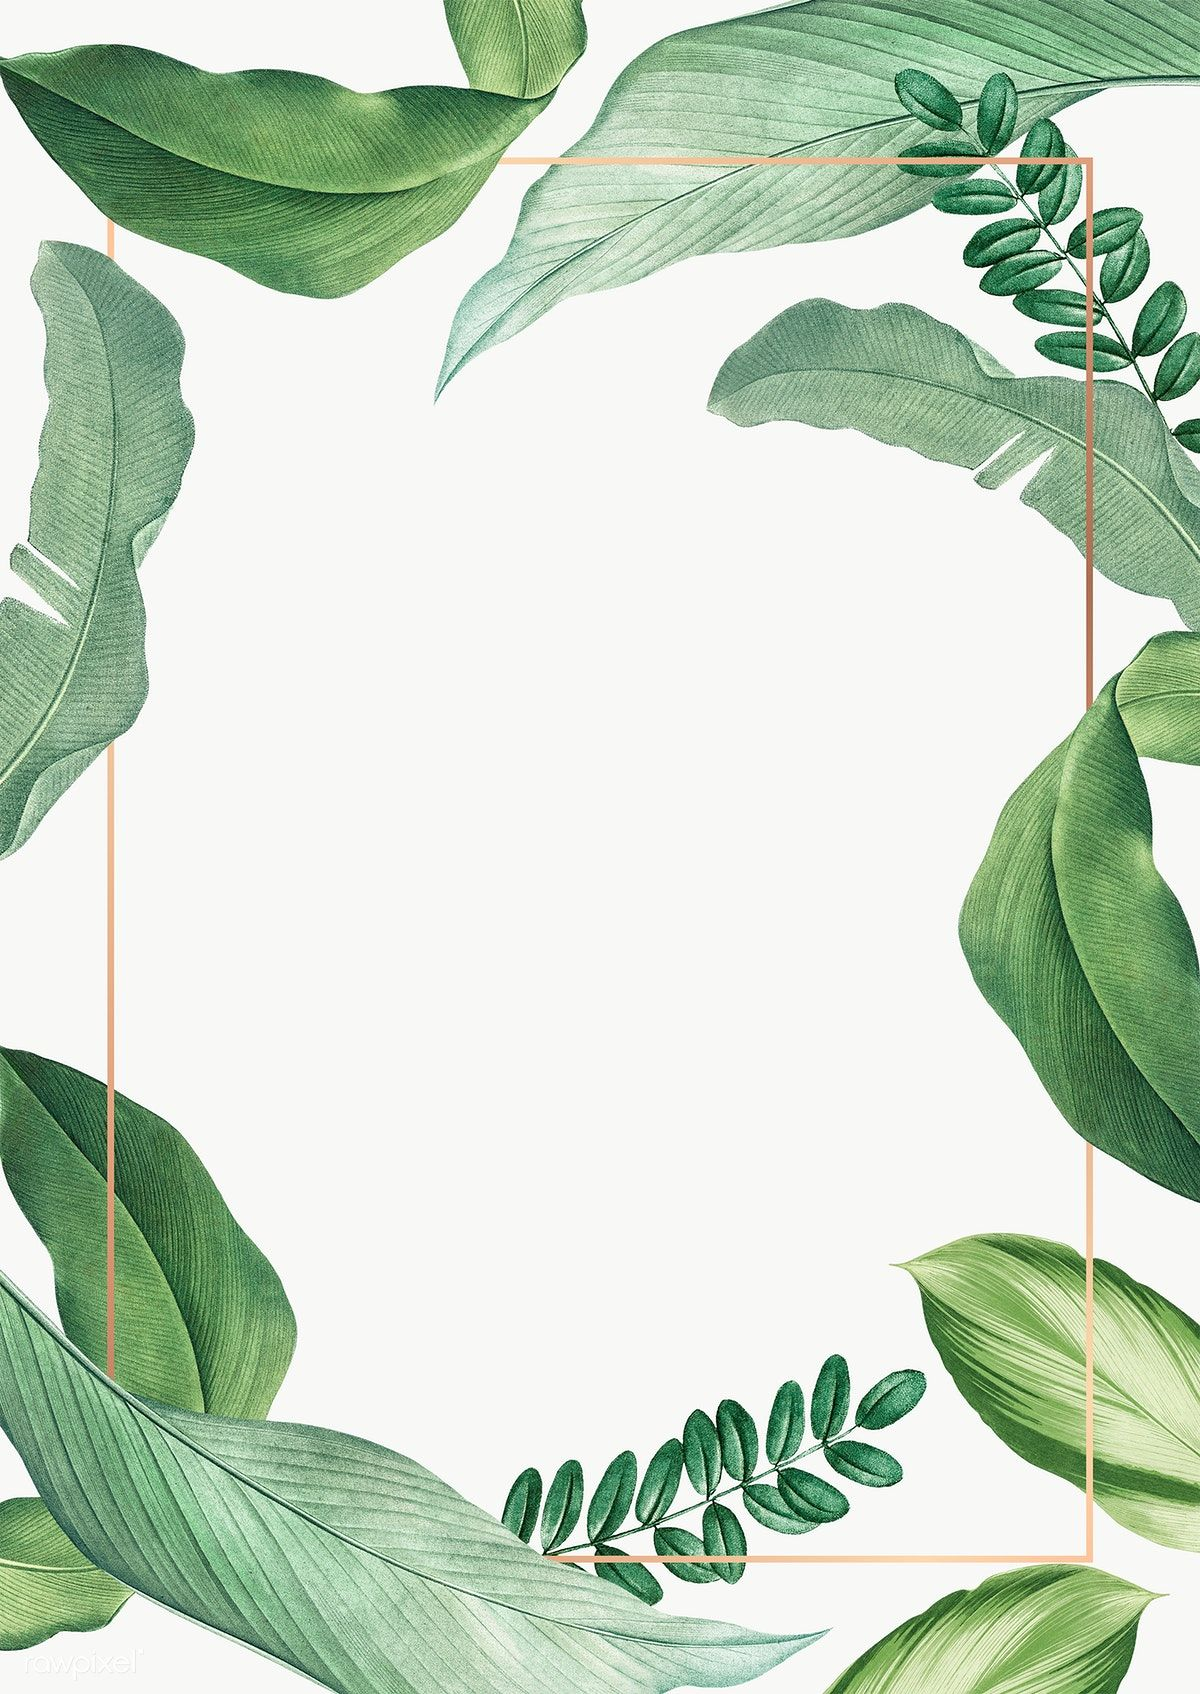 Download Premium Png Of Hand Drawn Tropical Leaves White Poster Tropical Leaves How To Draw Hands Leaf Background Exotic leaves, banana leaves, palm leaves, monstera leaves. hand drawn tropical leaves white poster